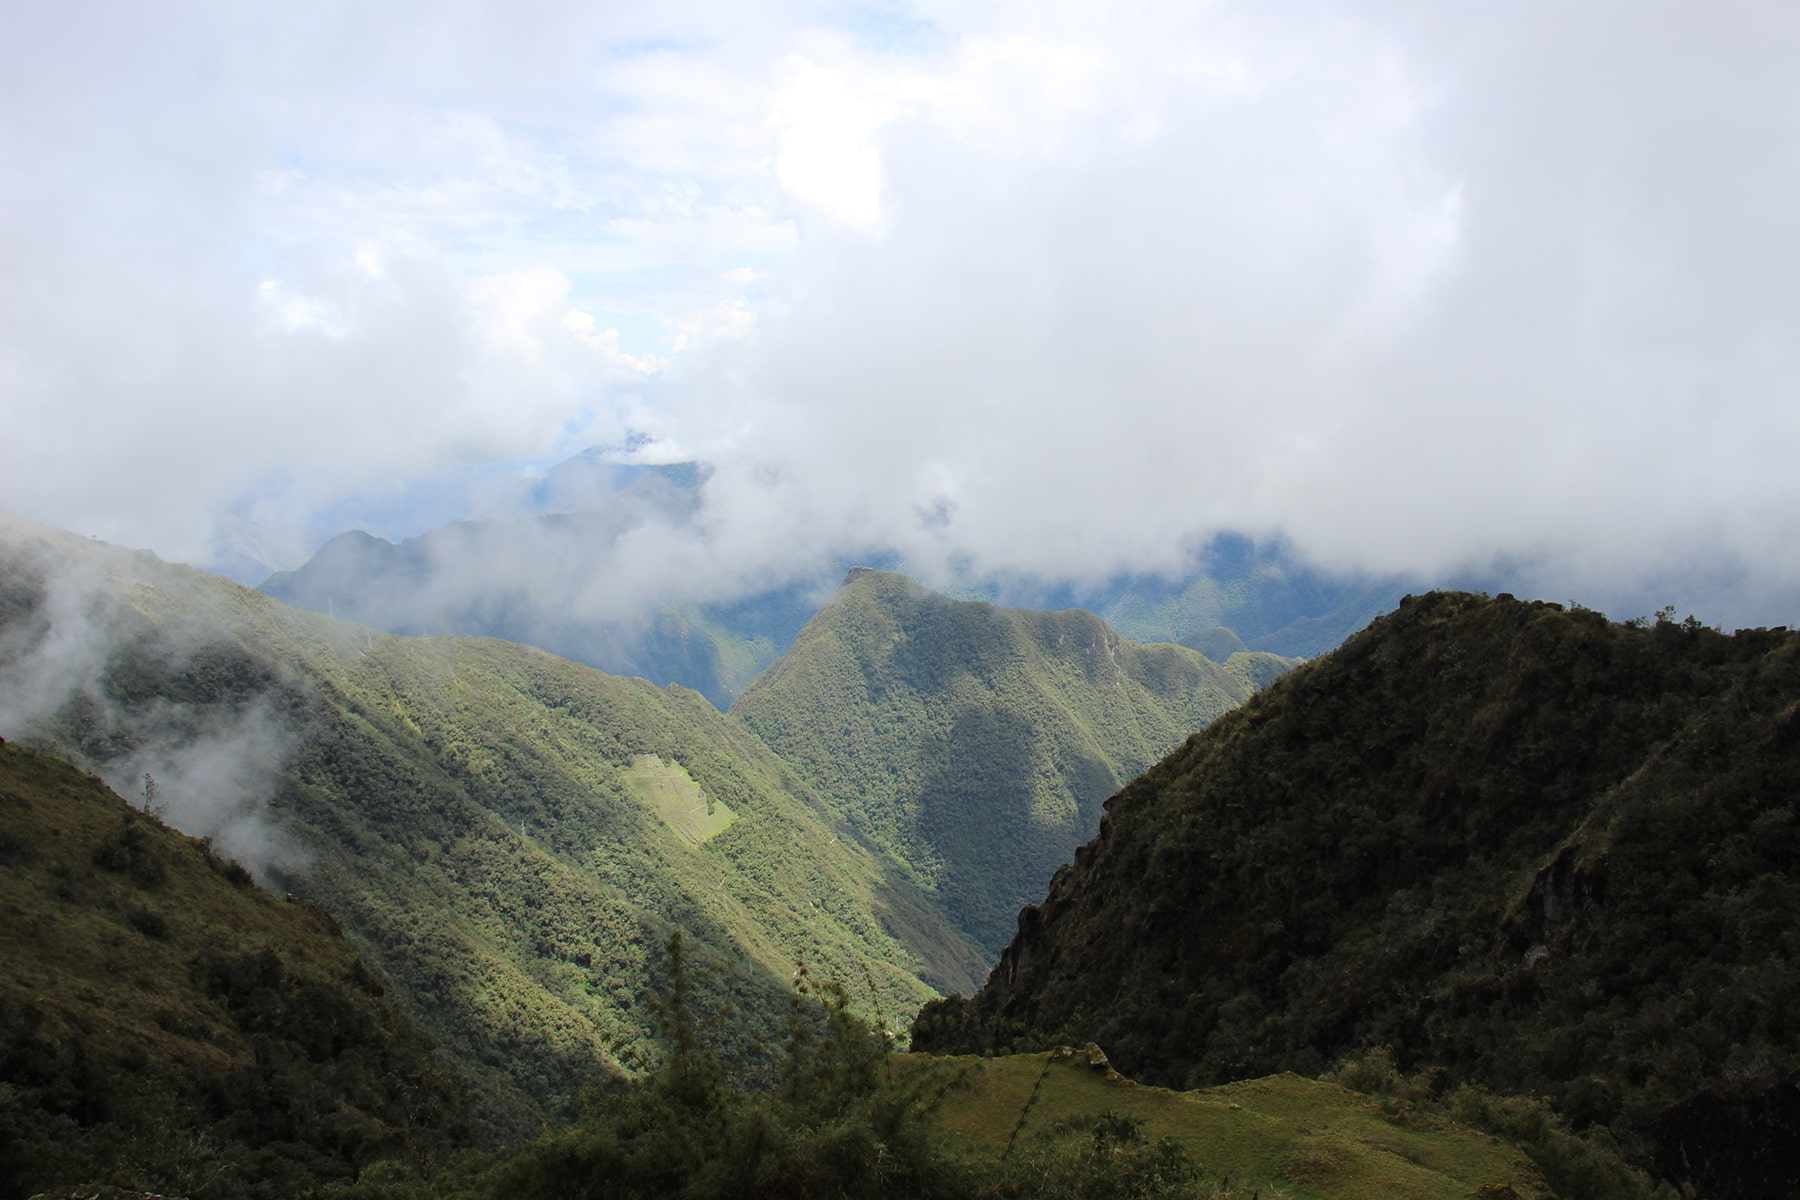 View on the mountains plunged in the fog on inca trail